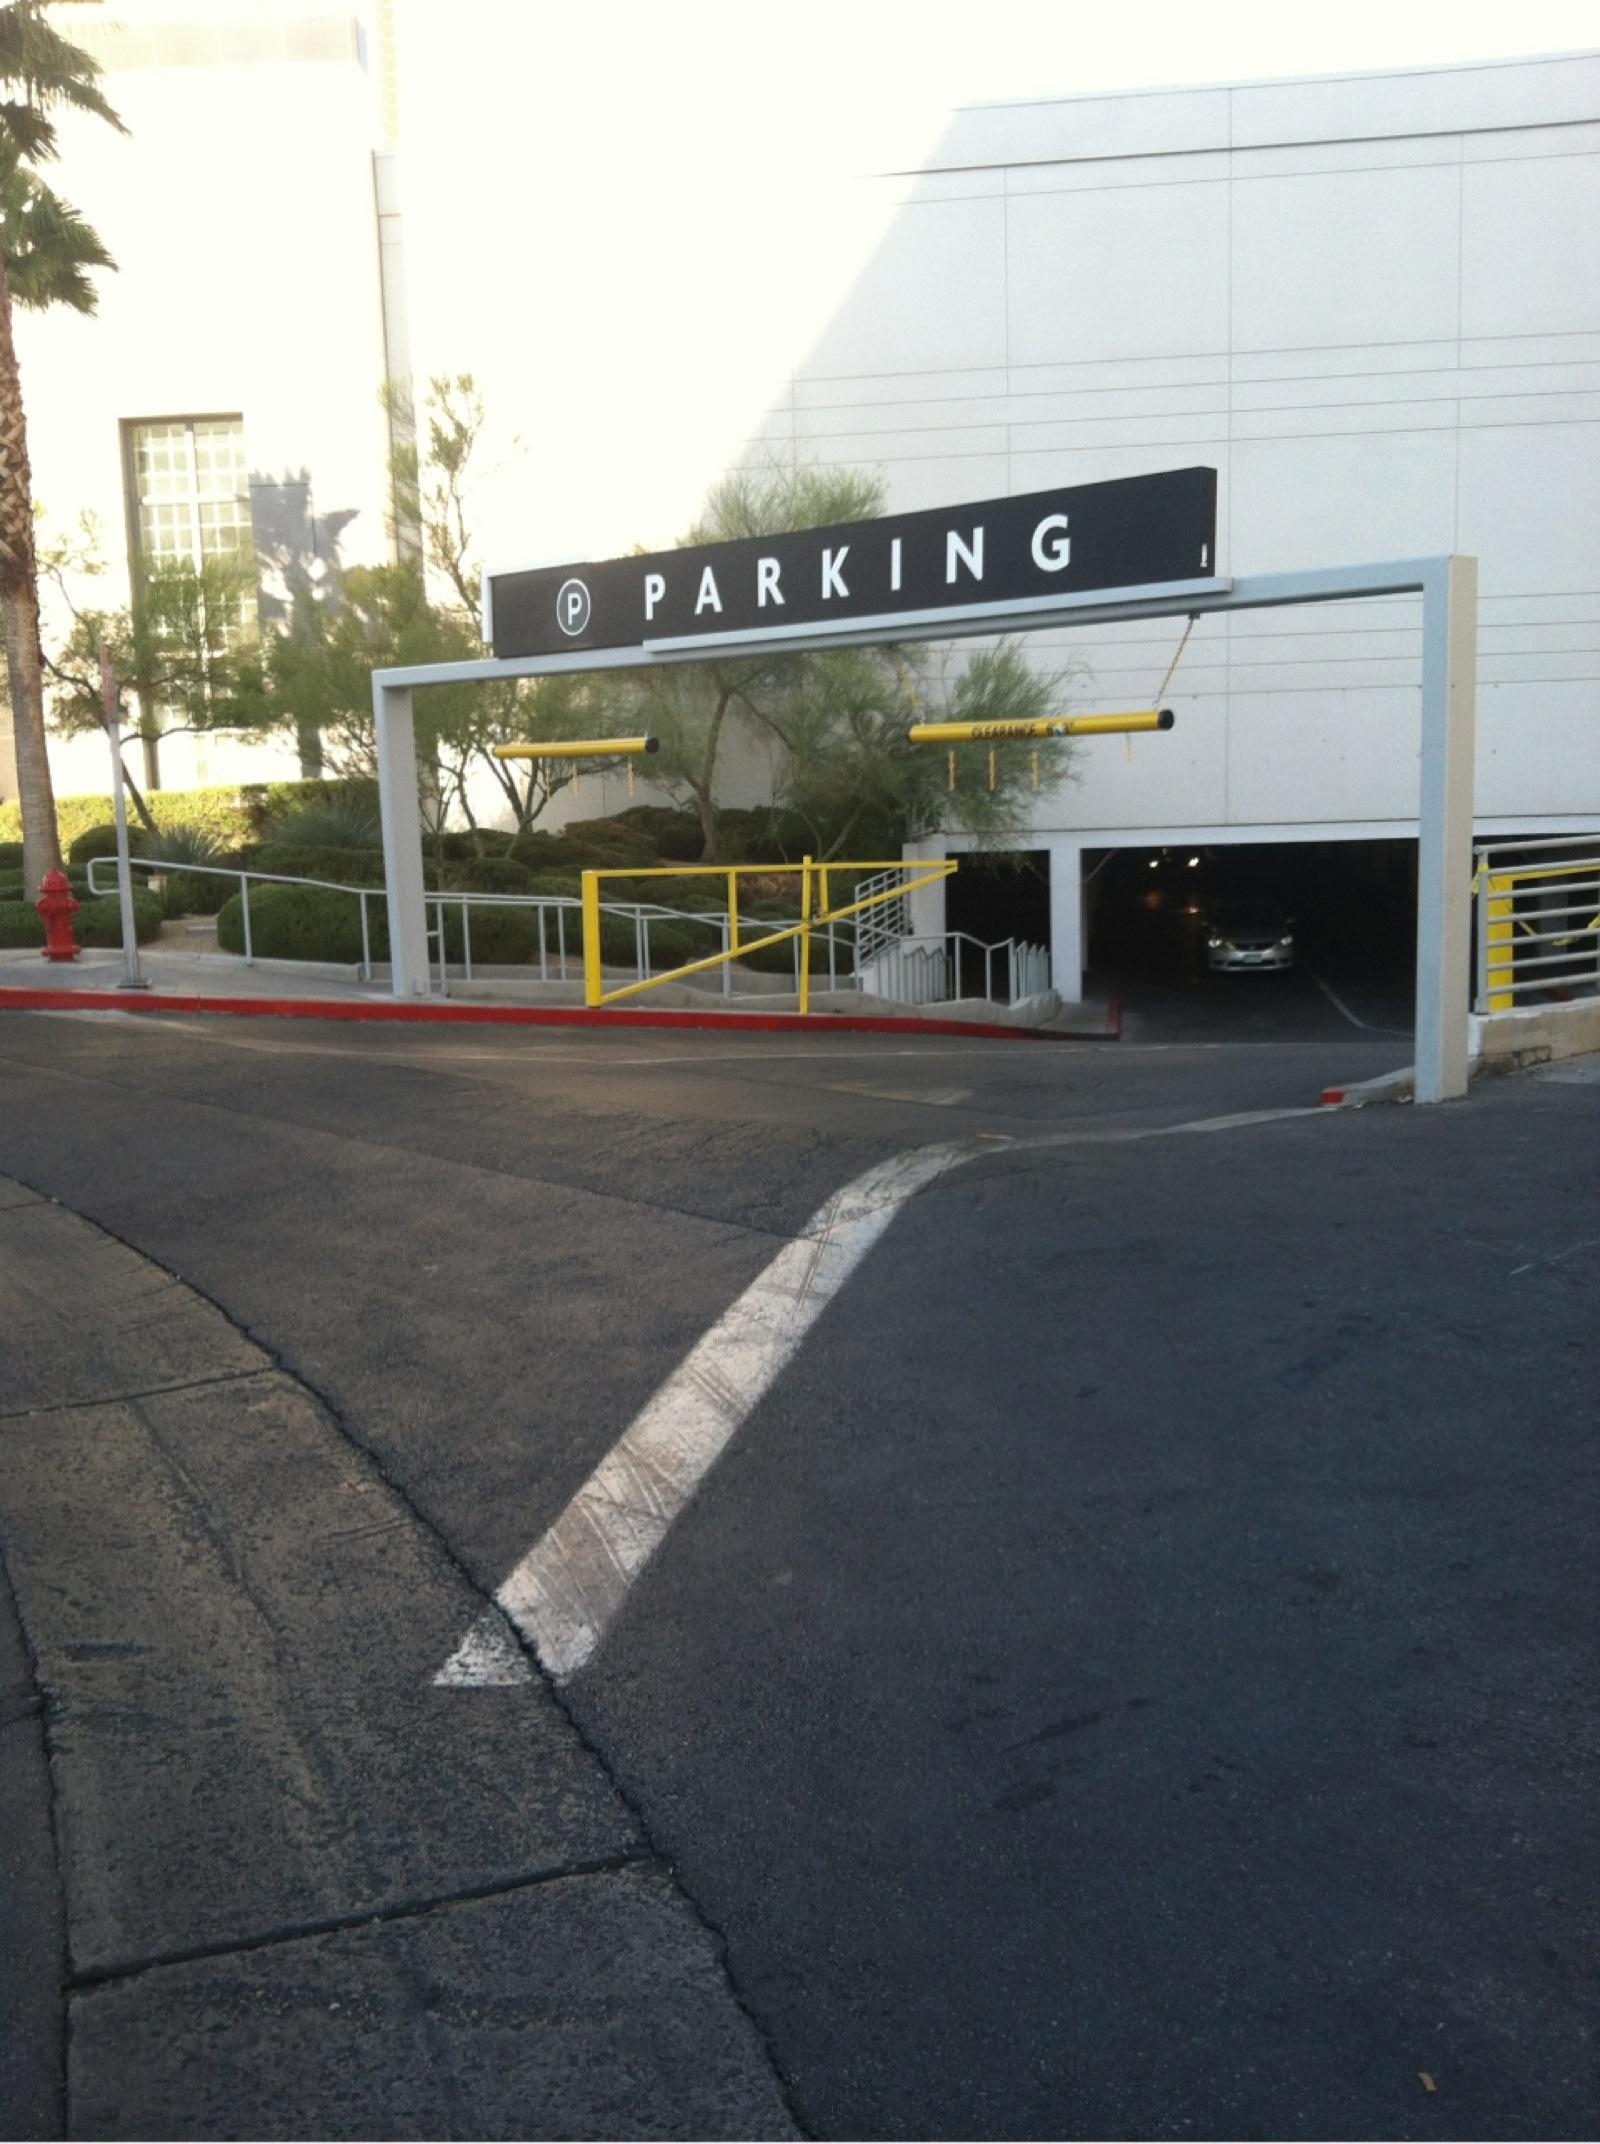 Fashion show mall parking